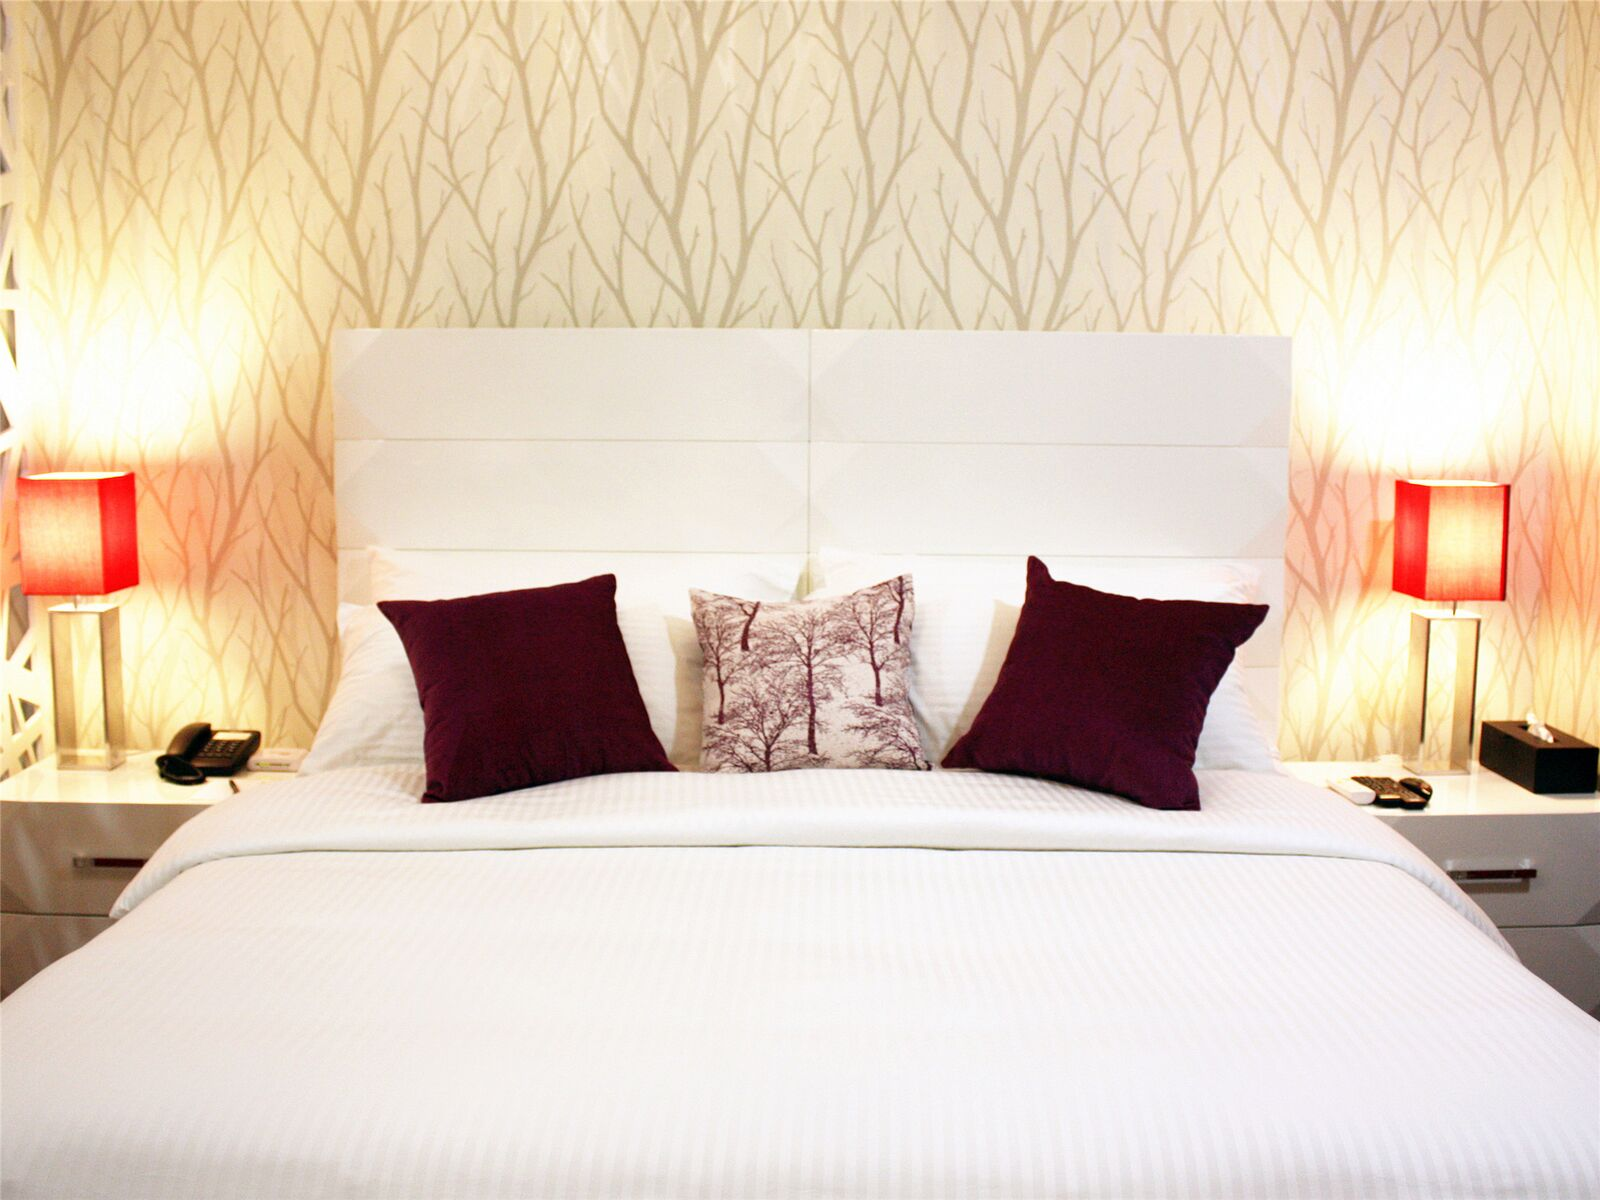 Bed at Alessandro Tower Apartments - Citybase Apartments